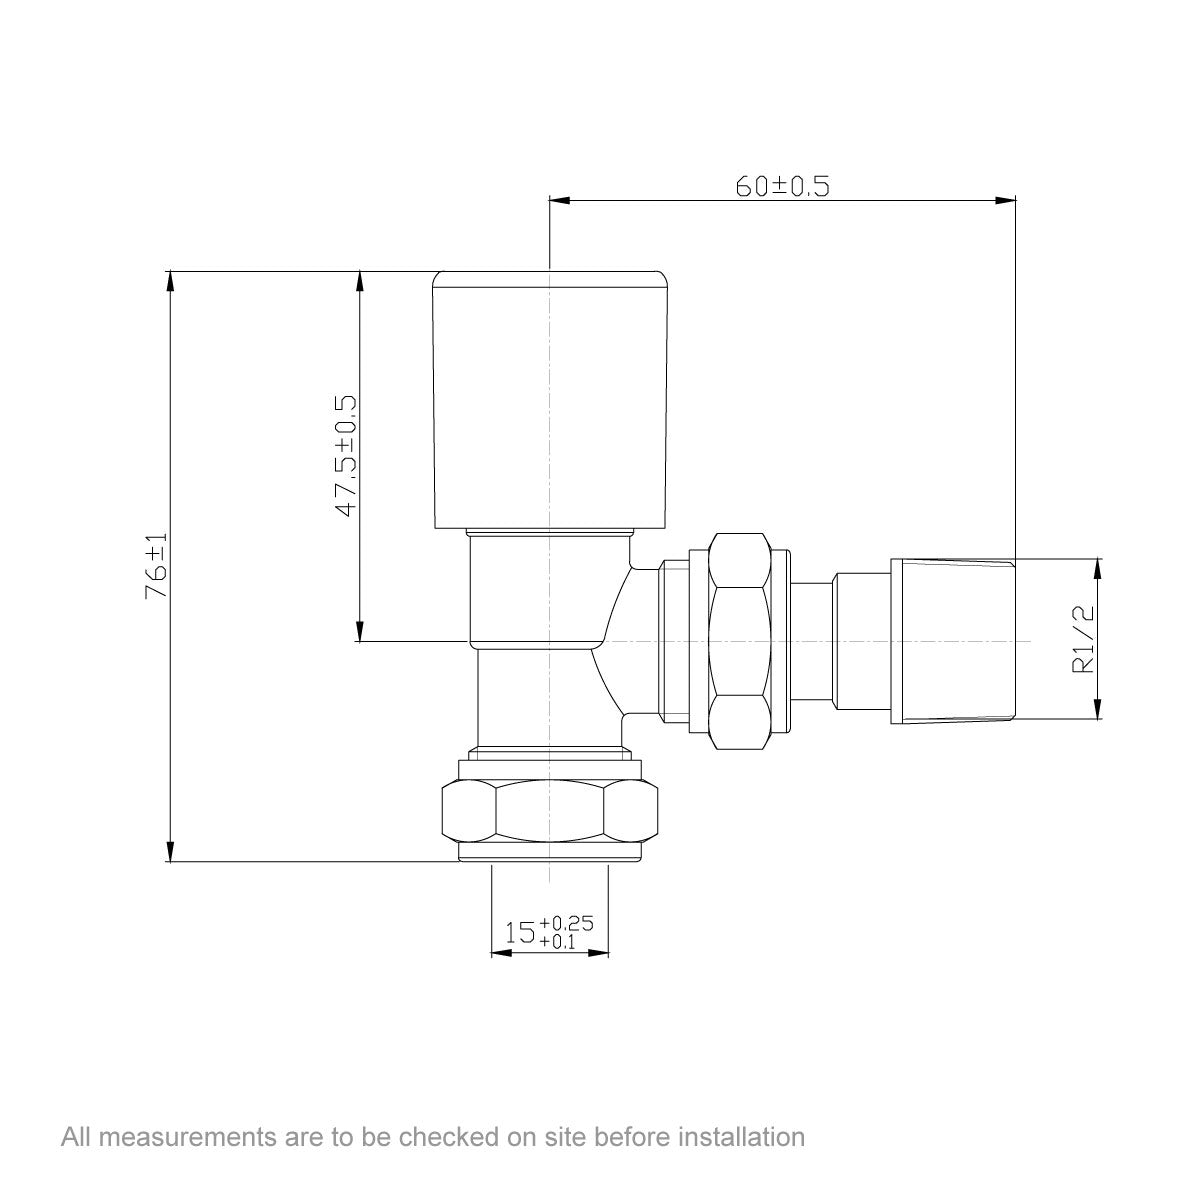 Dimensions for Clarity angled radiator valves